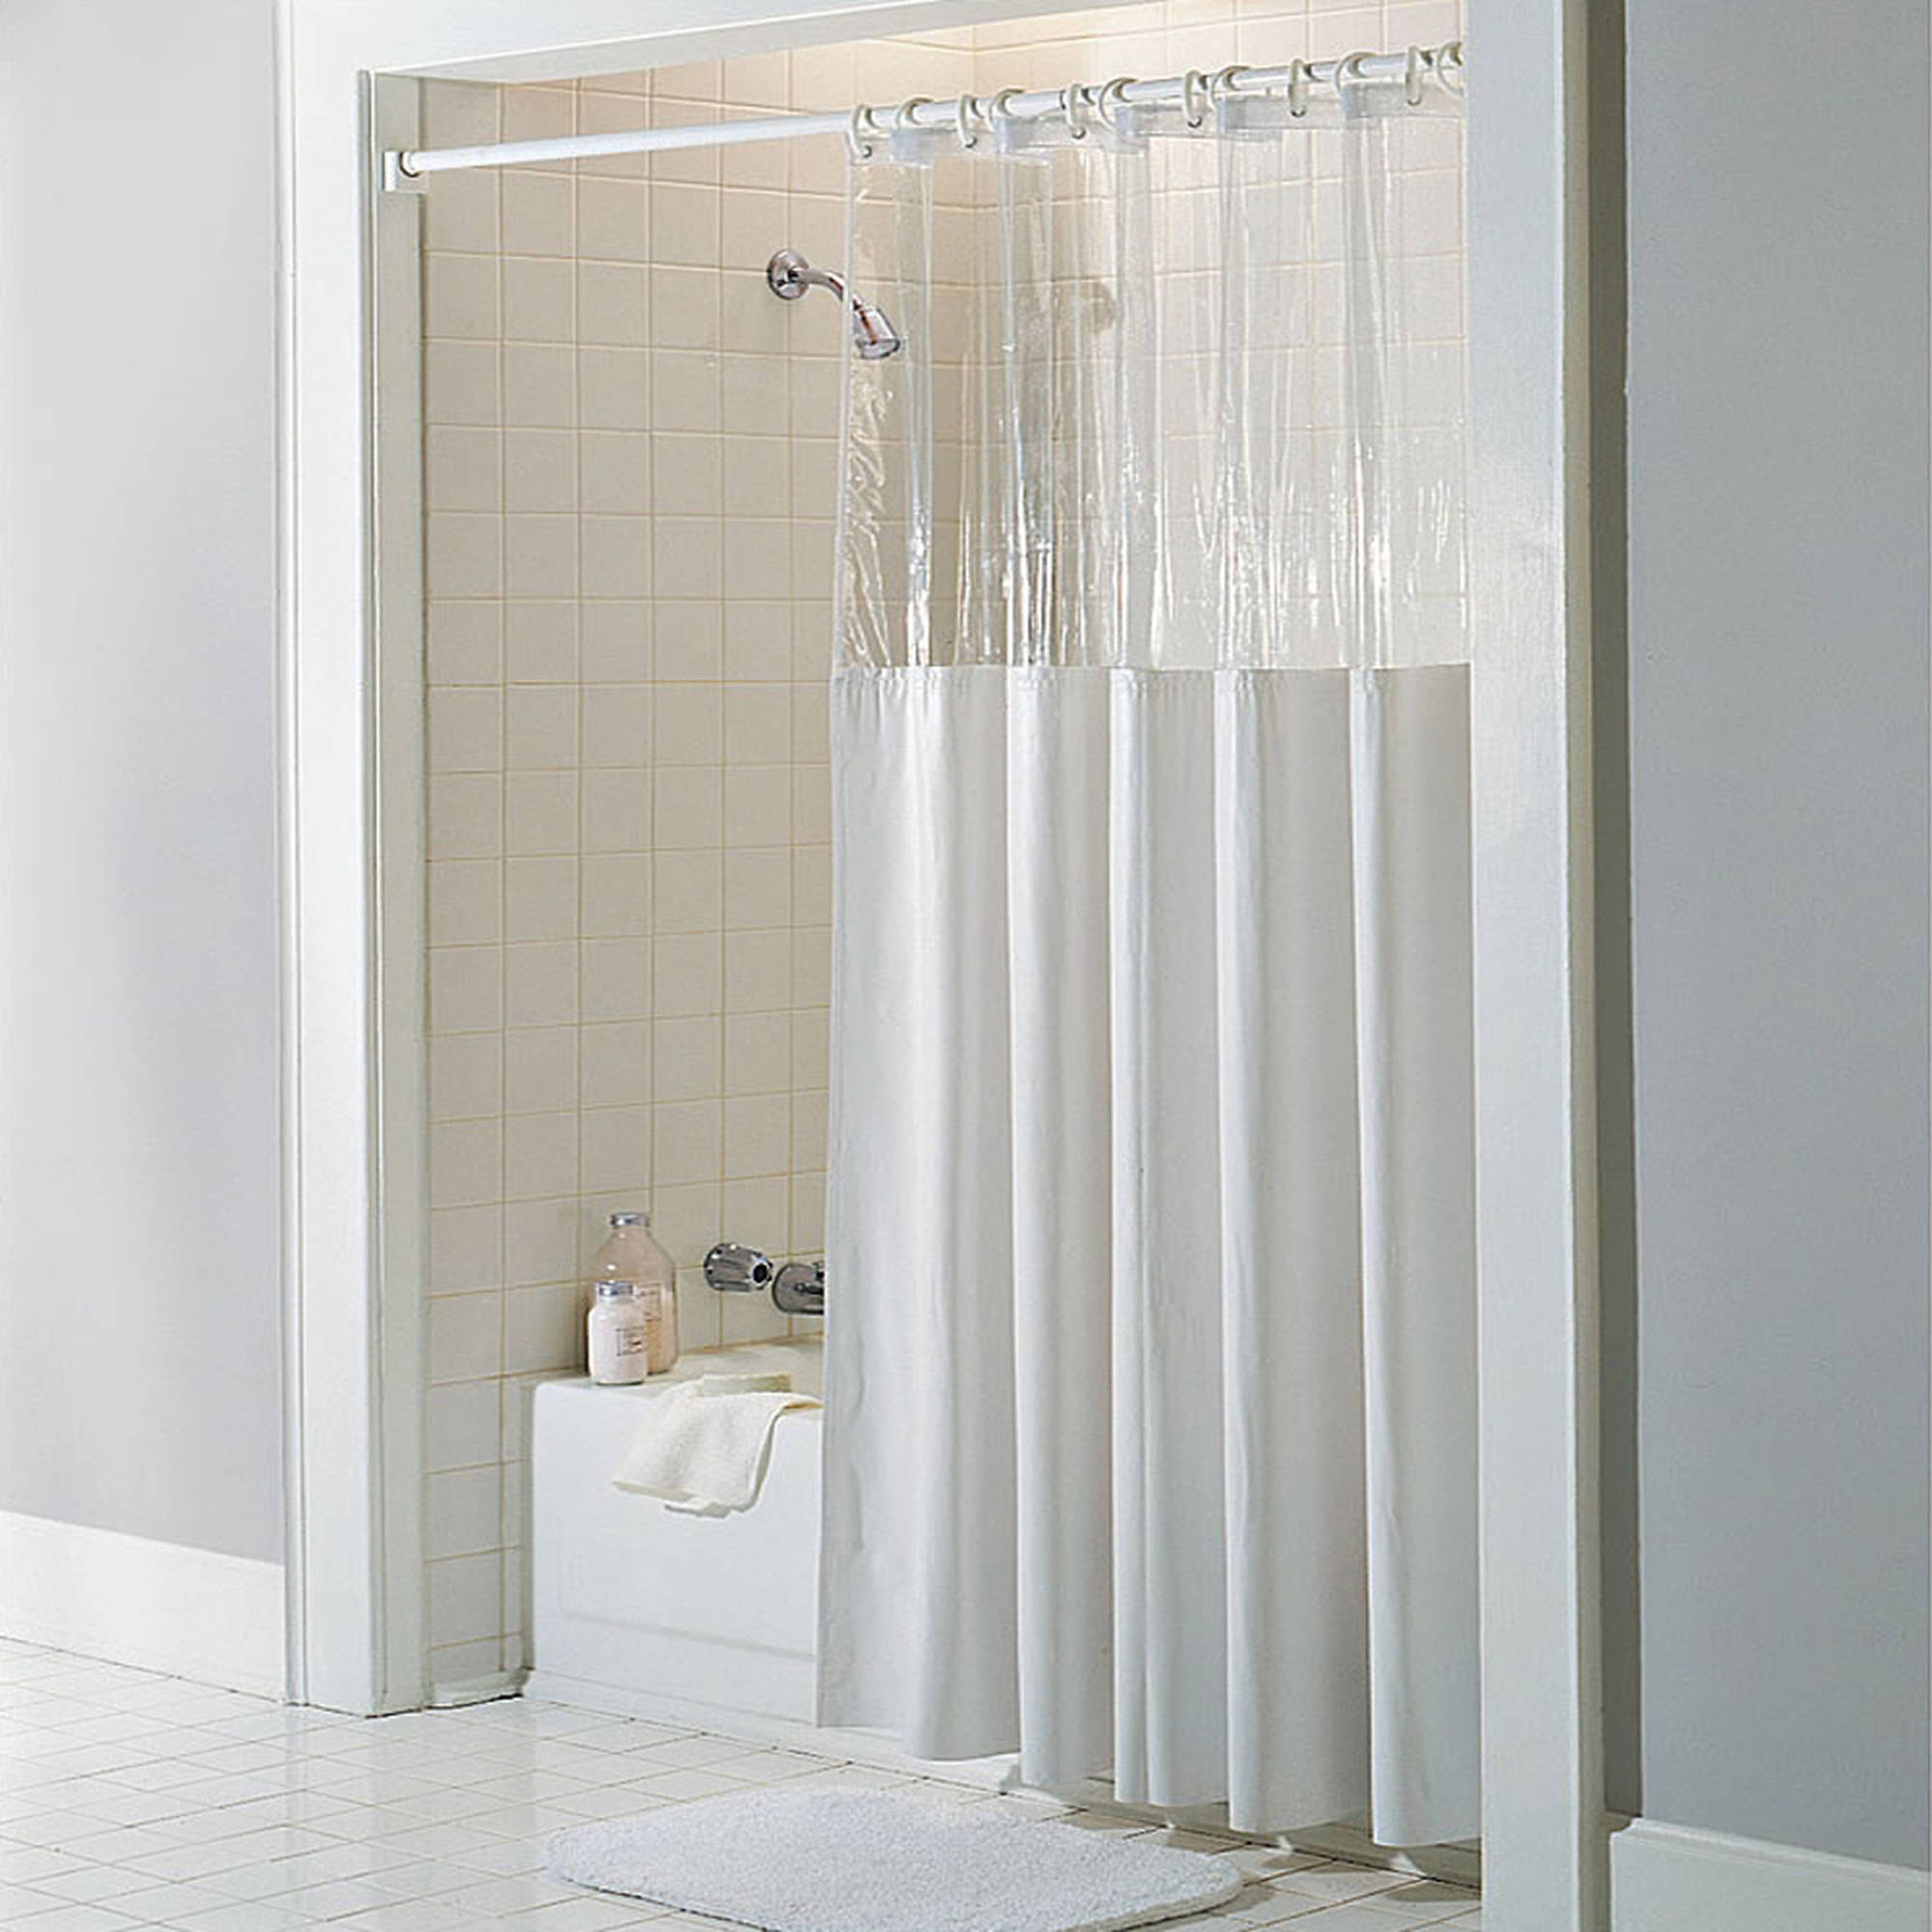 See Through Top Clear/White Vinyl Bath Shower Curtain, 72\